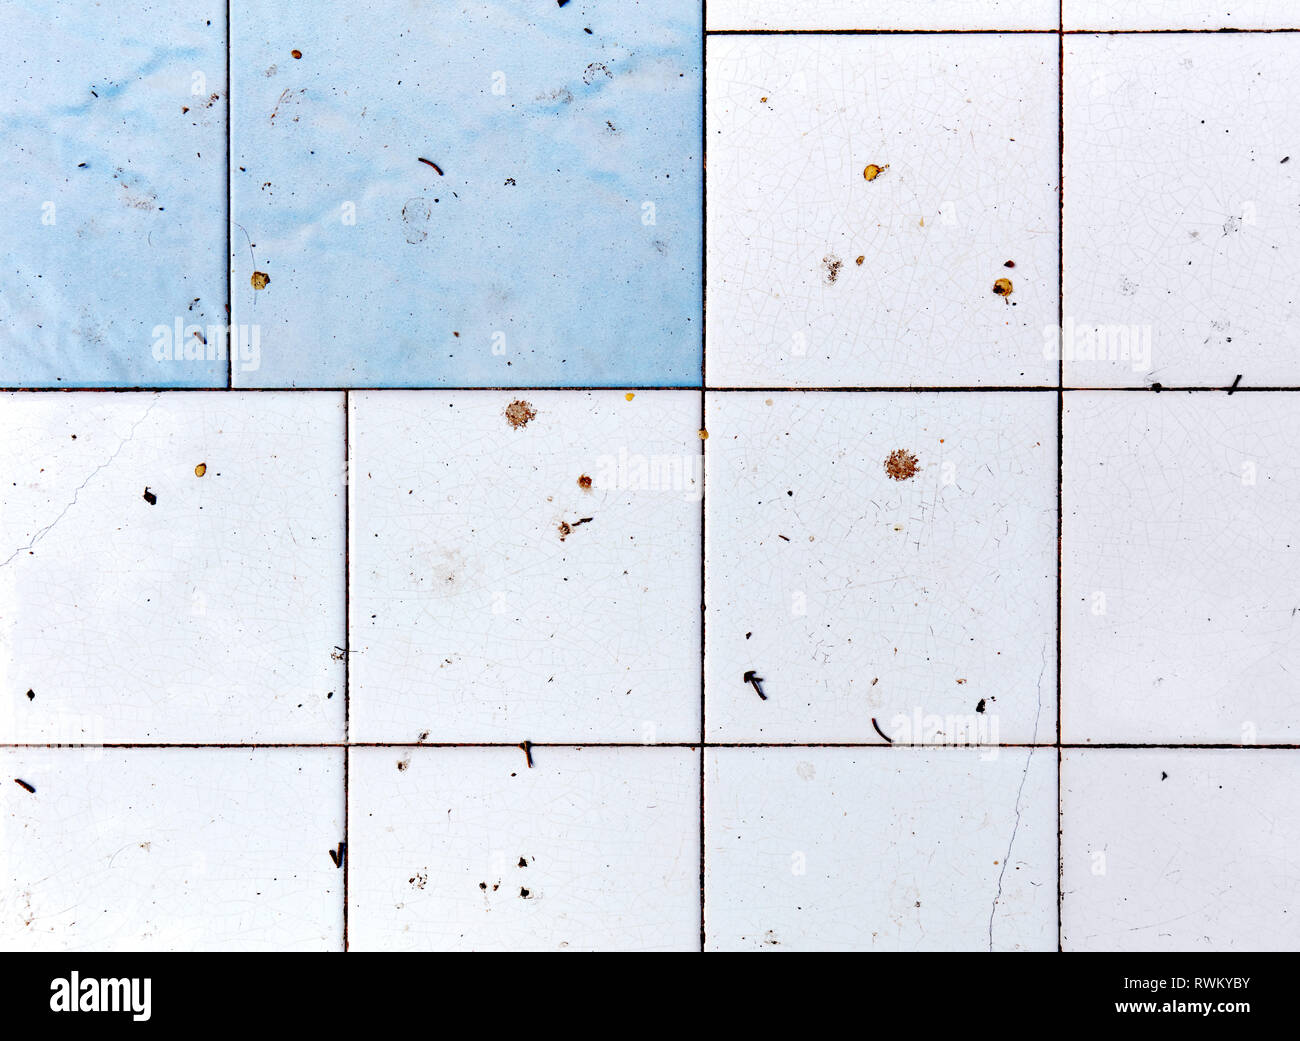 Dirty and unhygienic white and blue square bathroom and kitchen tiles background. Stock Photo